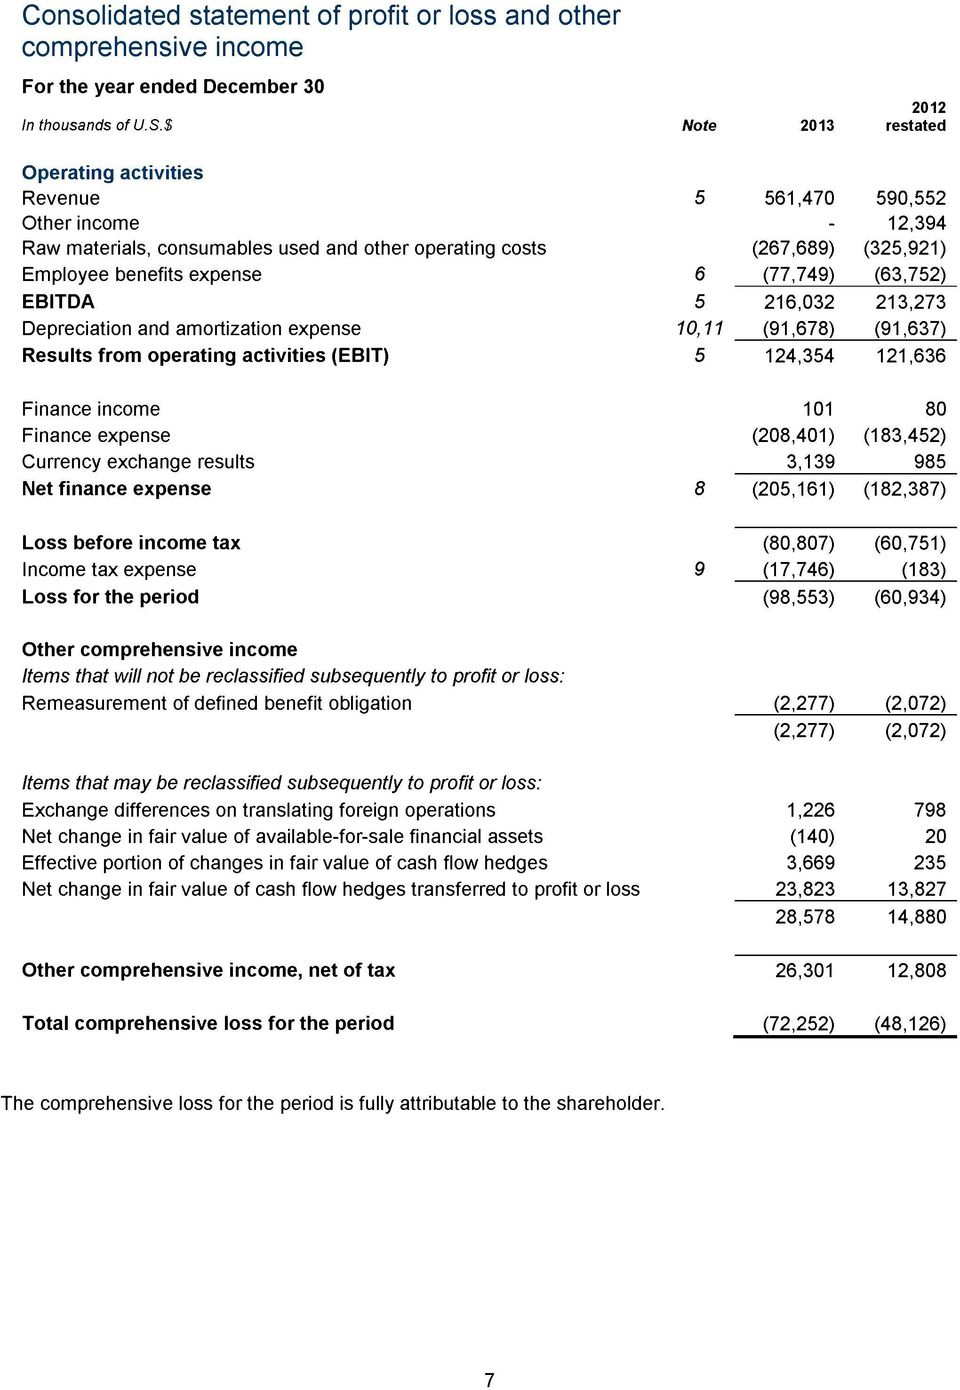 (77,749) (63,752) EBITDA 5 216,032 213,273 Depreciation and amortization expense 10,11 (91,678) (91,637) Results from operating activities (EBIT) 5 124,354 121,636 Finance income 101 80 Finance